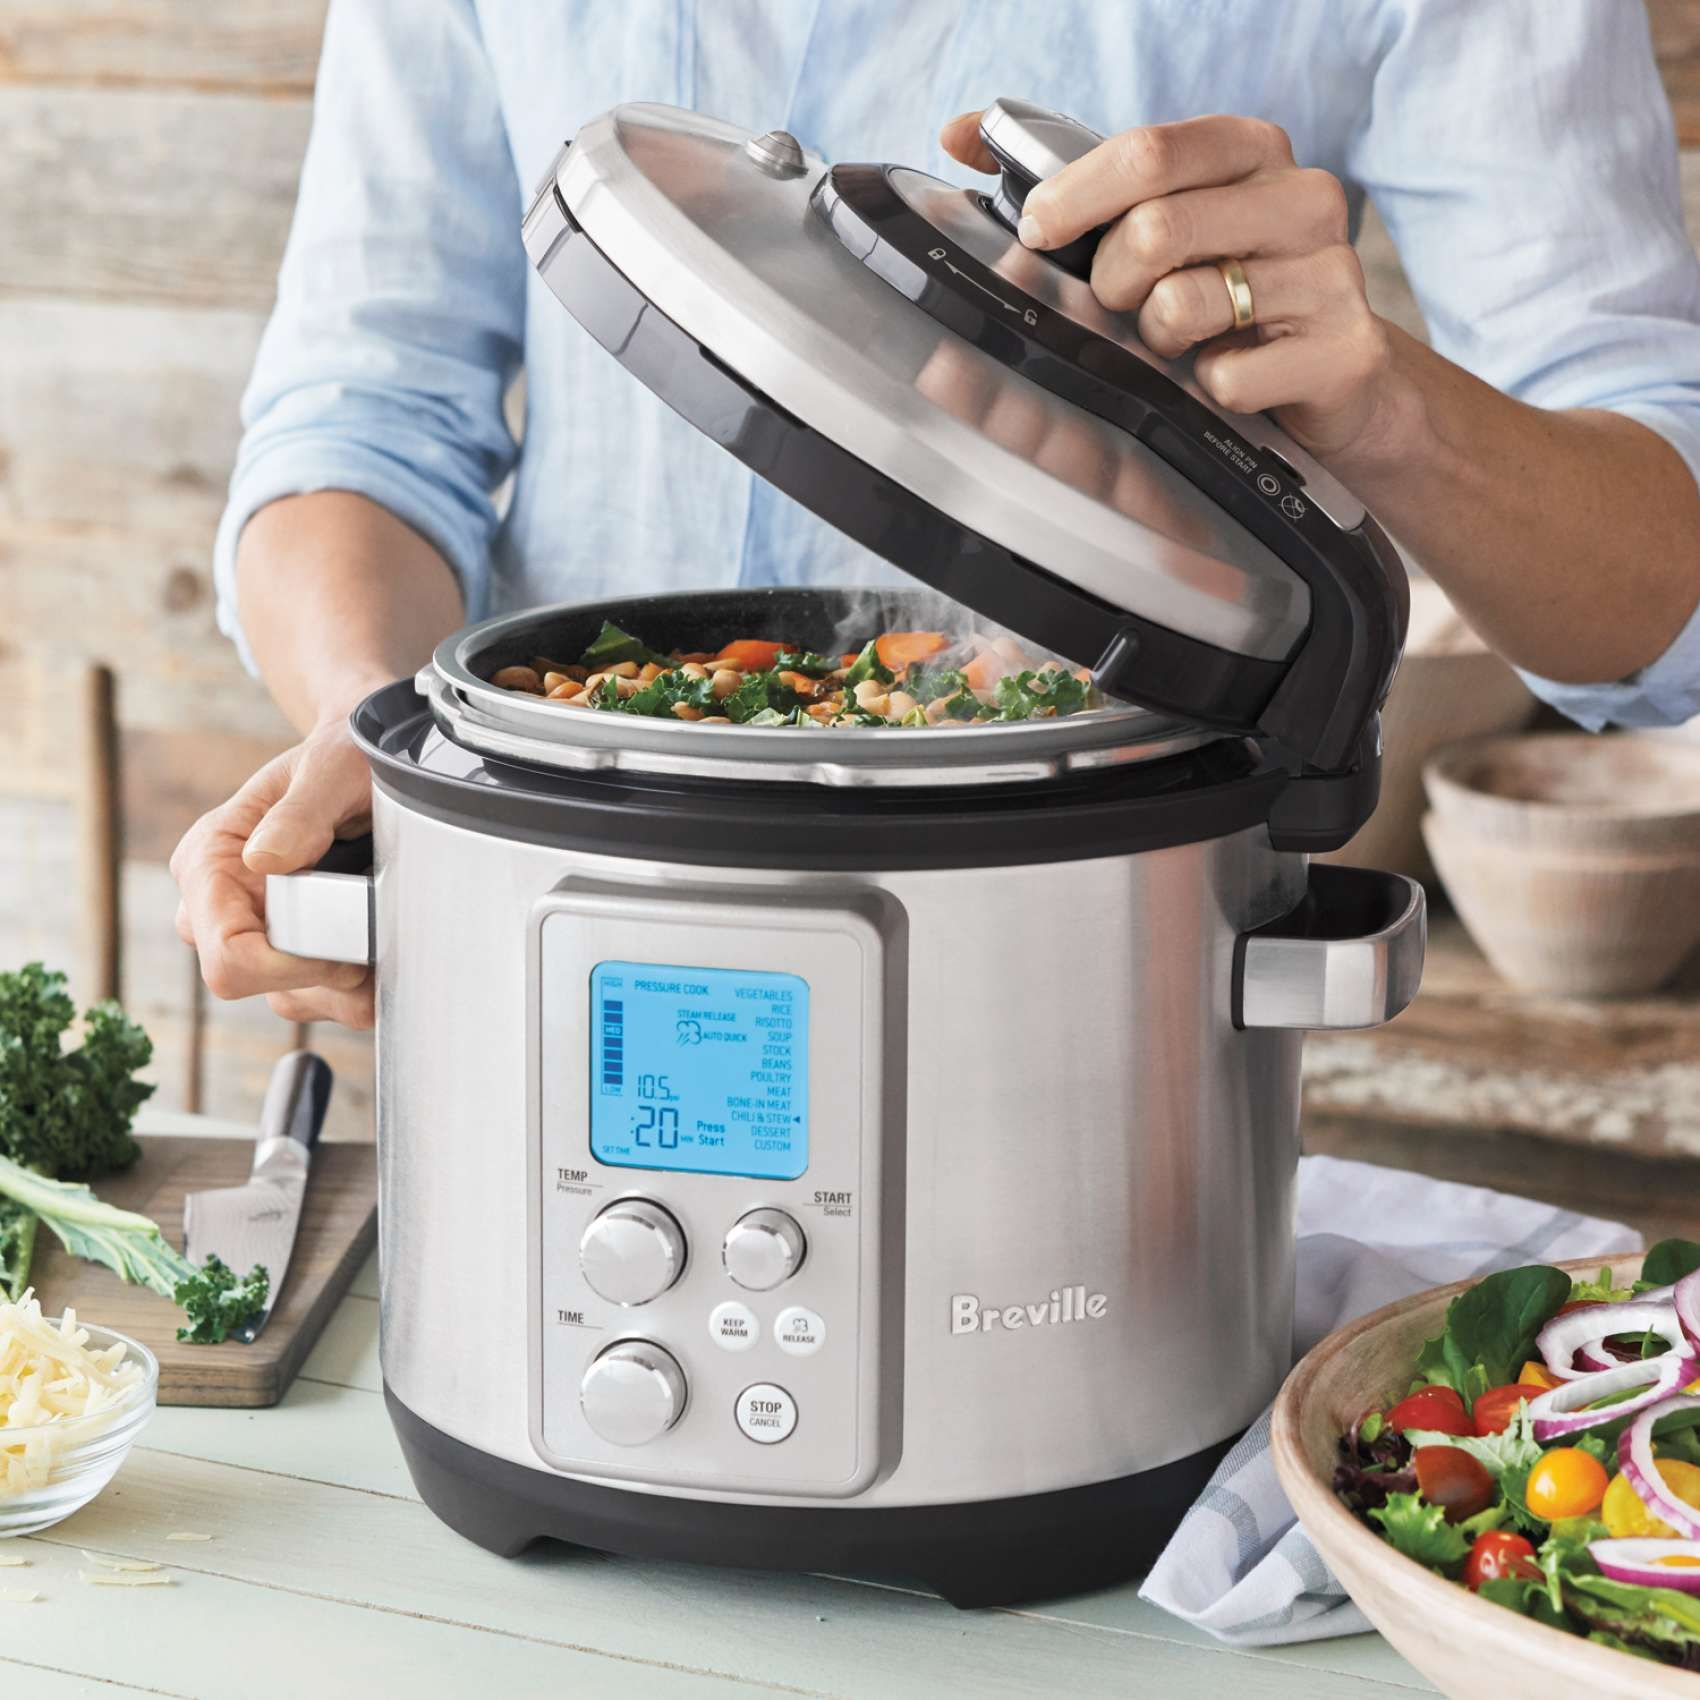 Breville Fast Slow Pro Pressure And Slow Cooker Sur La Table With Images White Bean Soup Recipes White Bean Soup